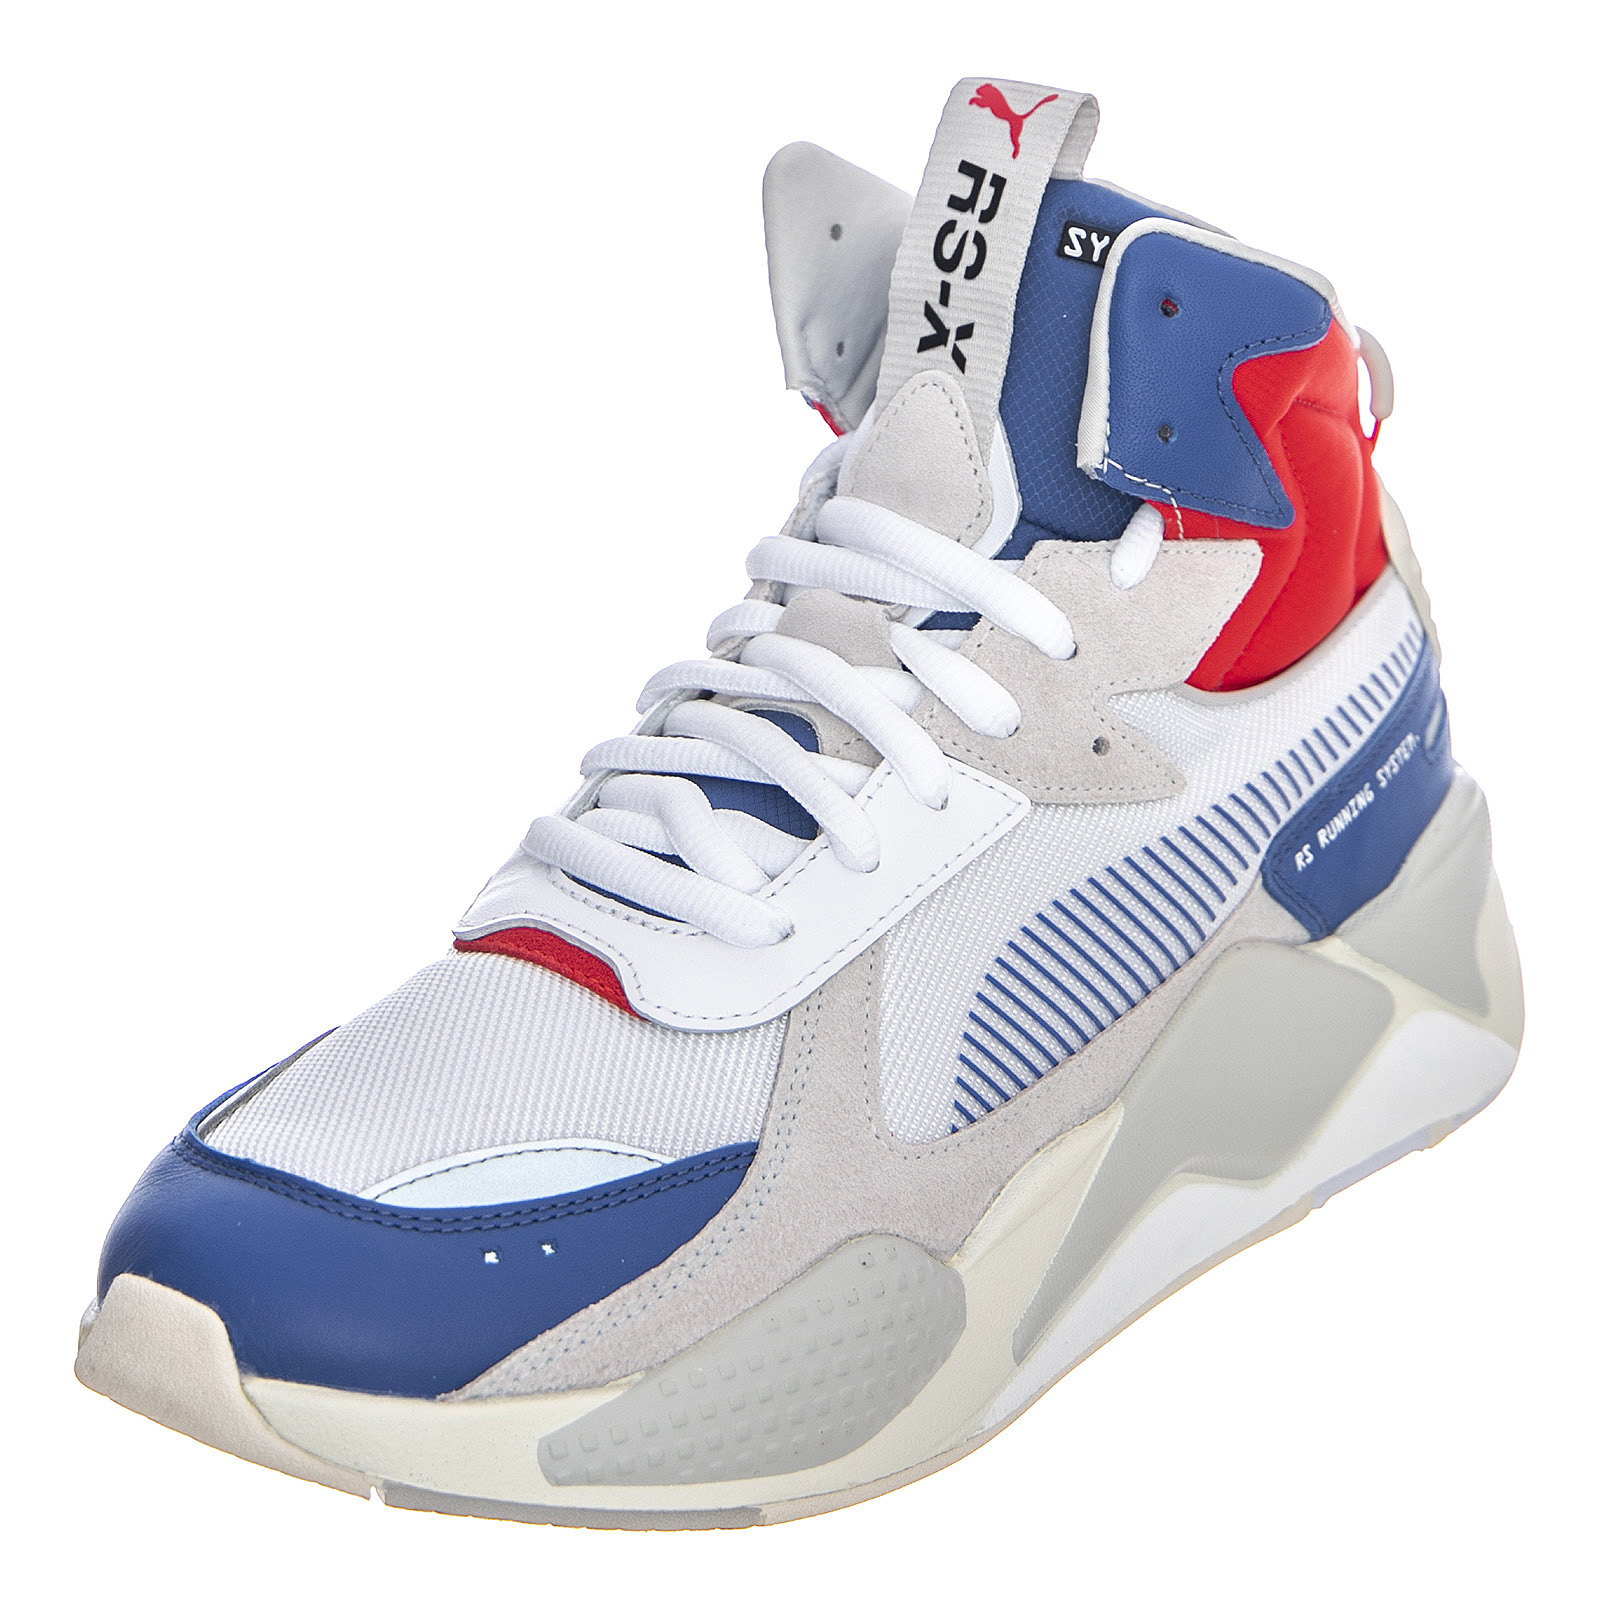 Details about Puma Rs X Midtop Utility Trainers Galaxy BluePuma White Shoes High Man